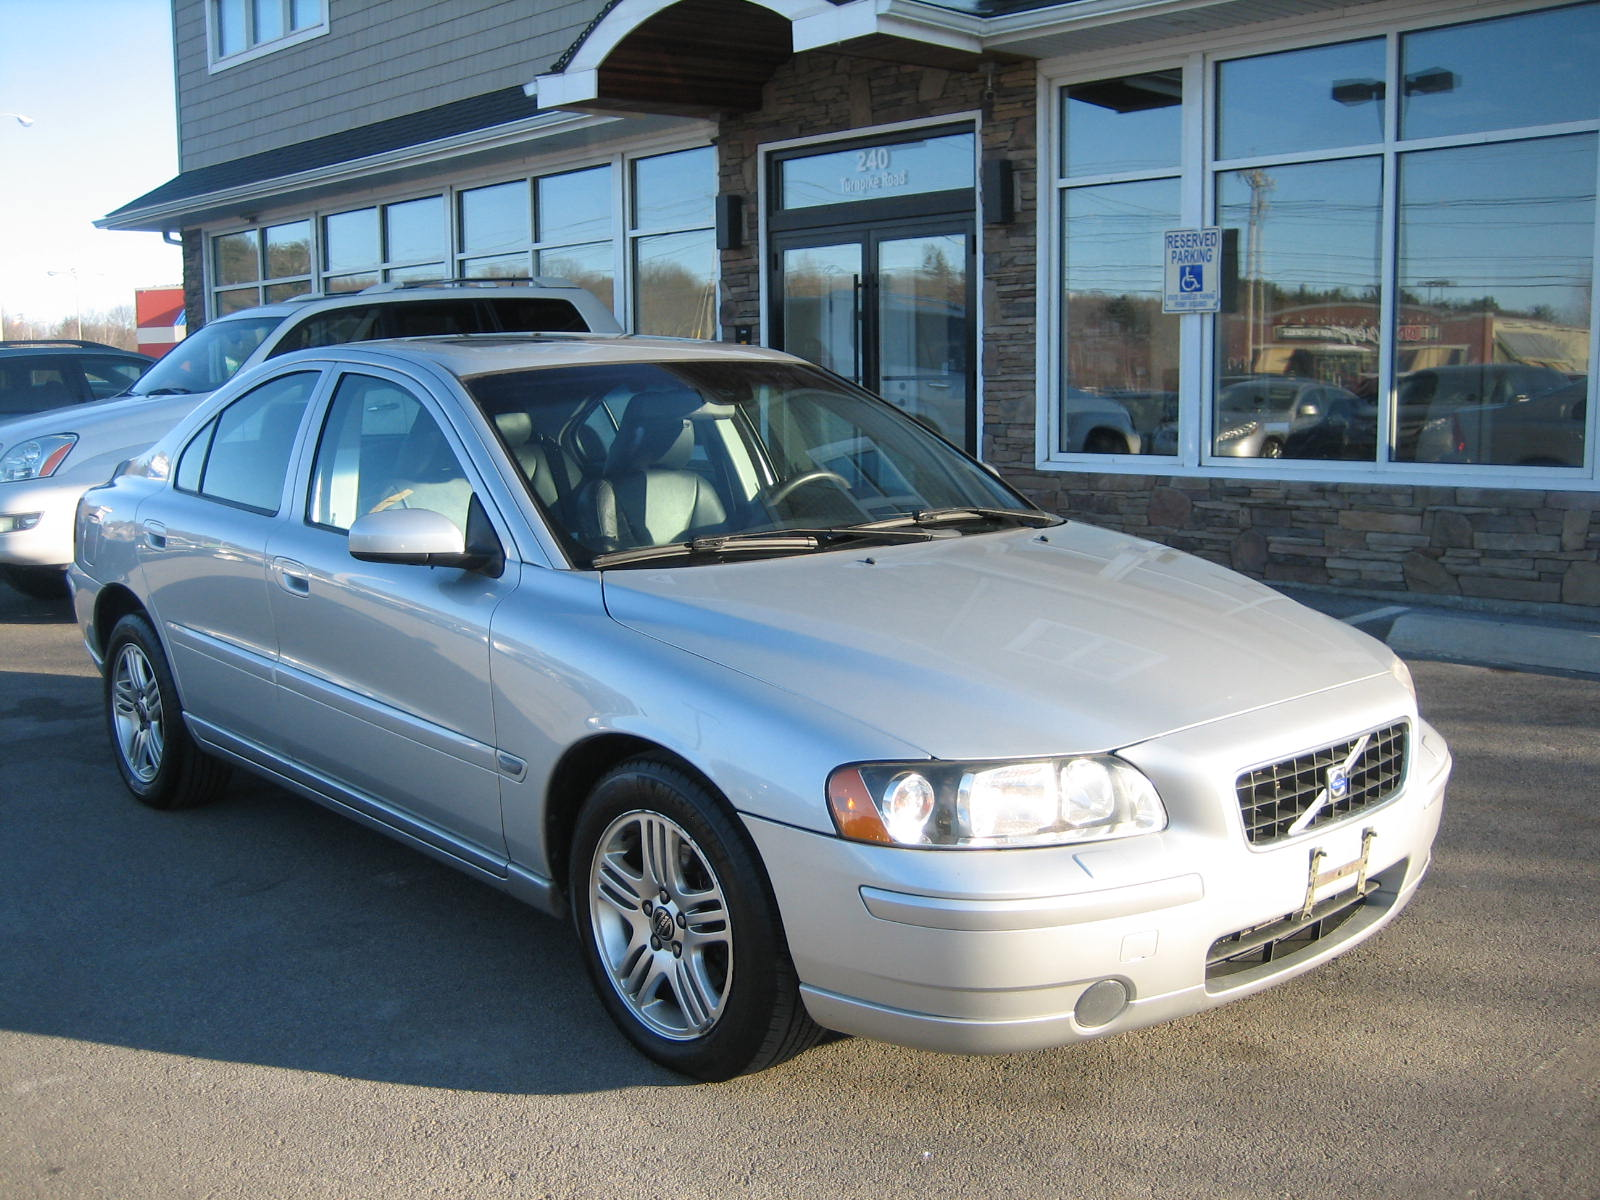 Picture of 2005 volvo s60 2 5t awd exterior